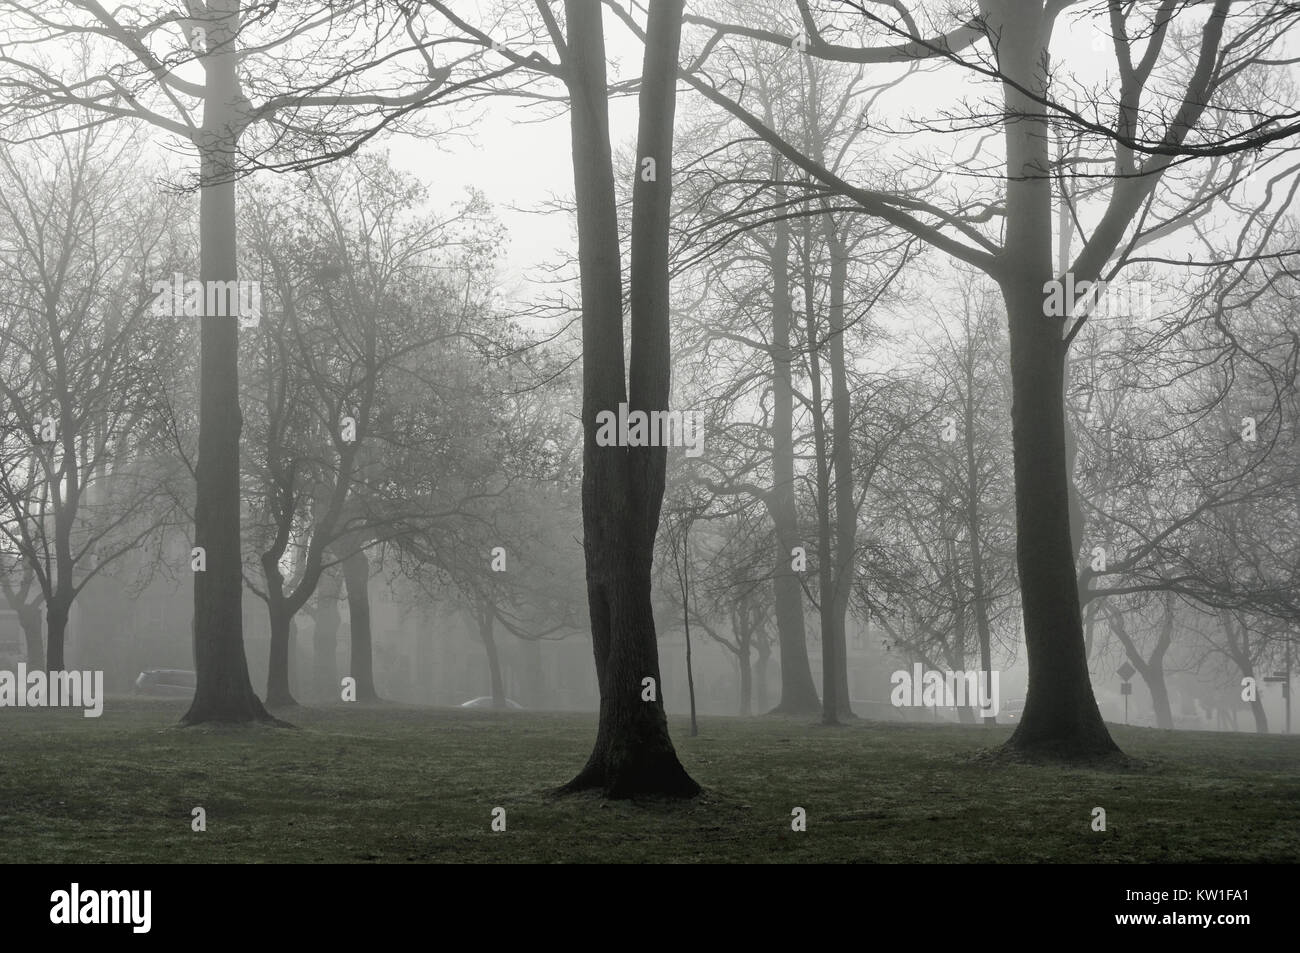 bare-deciduous-trees-on-a-foggy-day-hadd